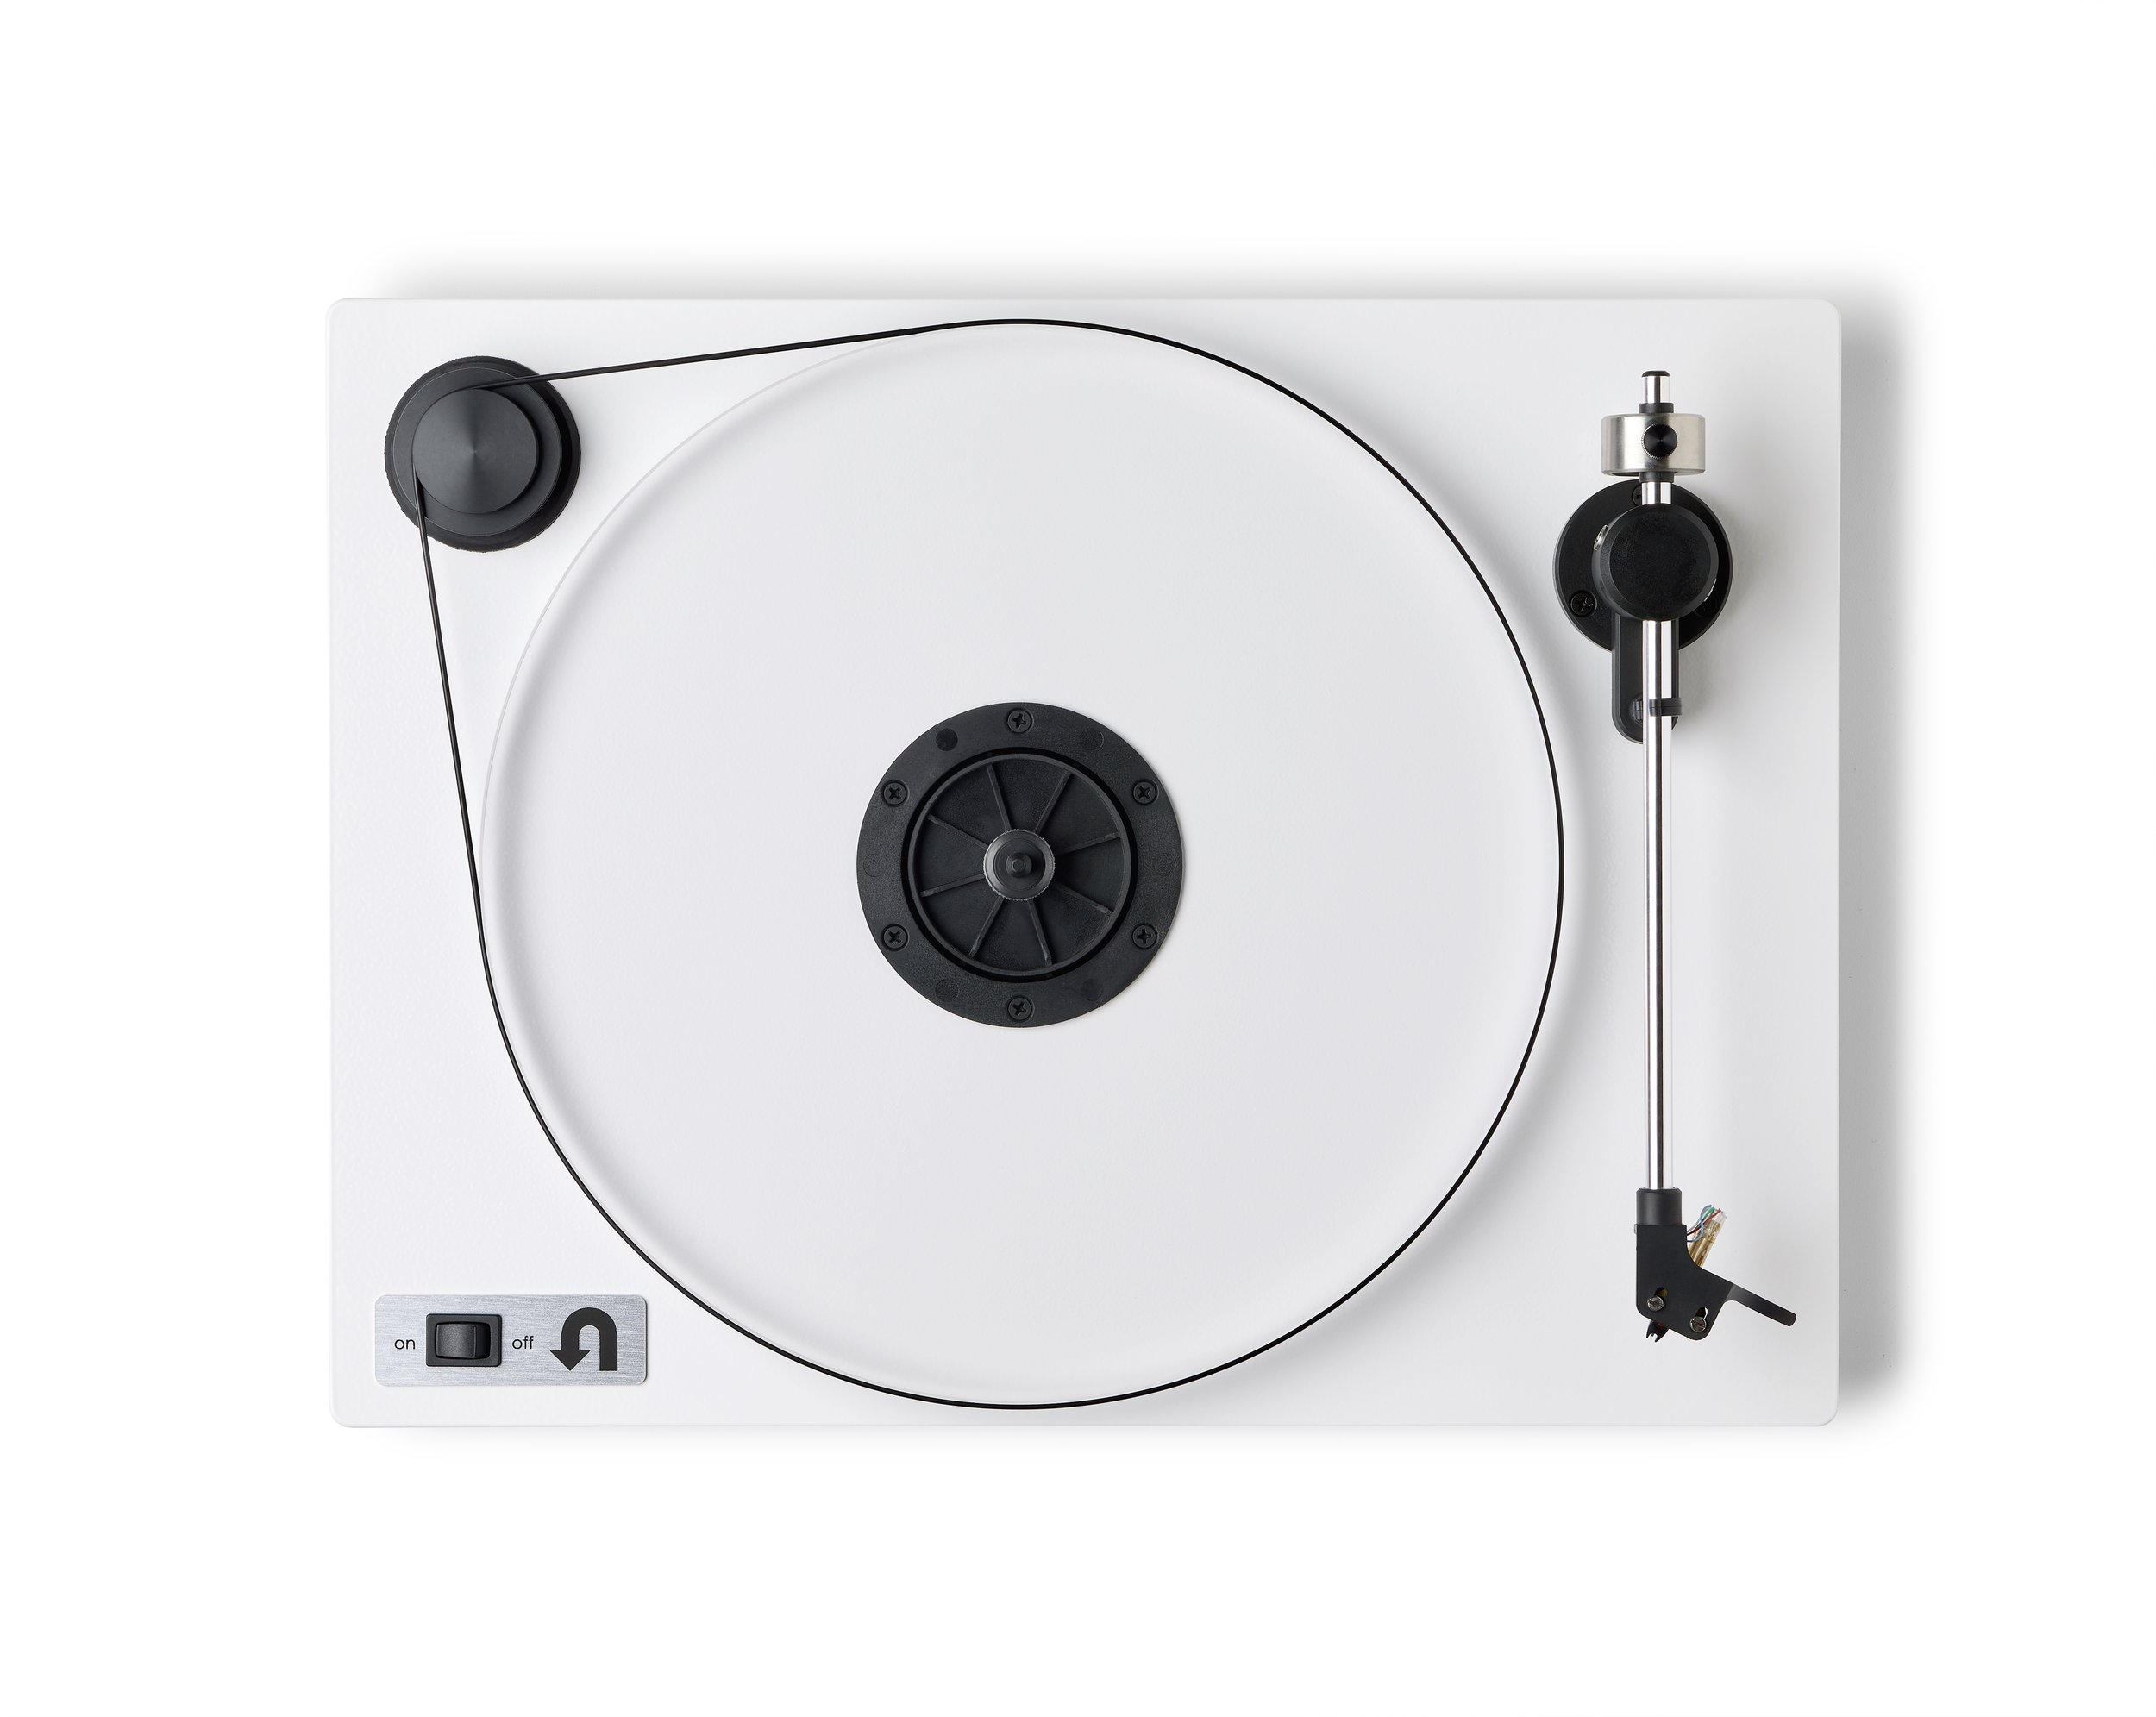 ORBIT PLUS - WHITE ACRYLIC PLATTER ORTOFON OM5E CARTRIDGE DUST COVER w/amp $359 wo/amp 309